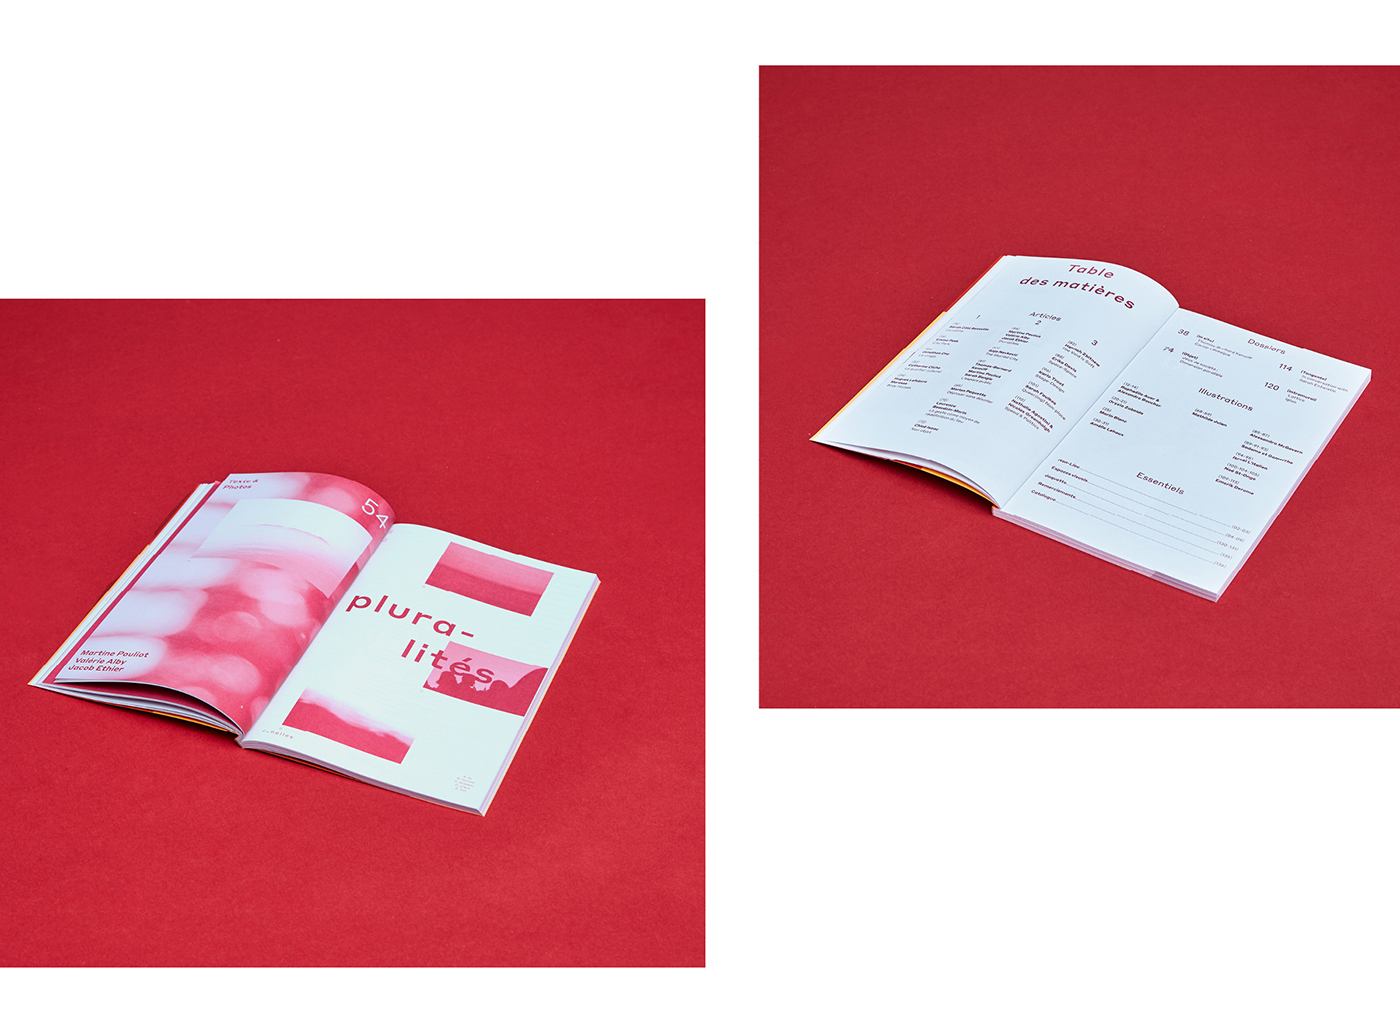 architecture magazine edition typography   Layout print non-lieu   Space  non-place